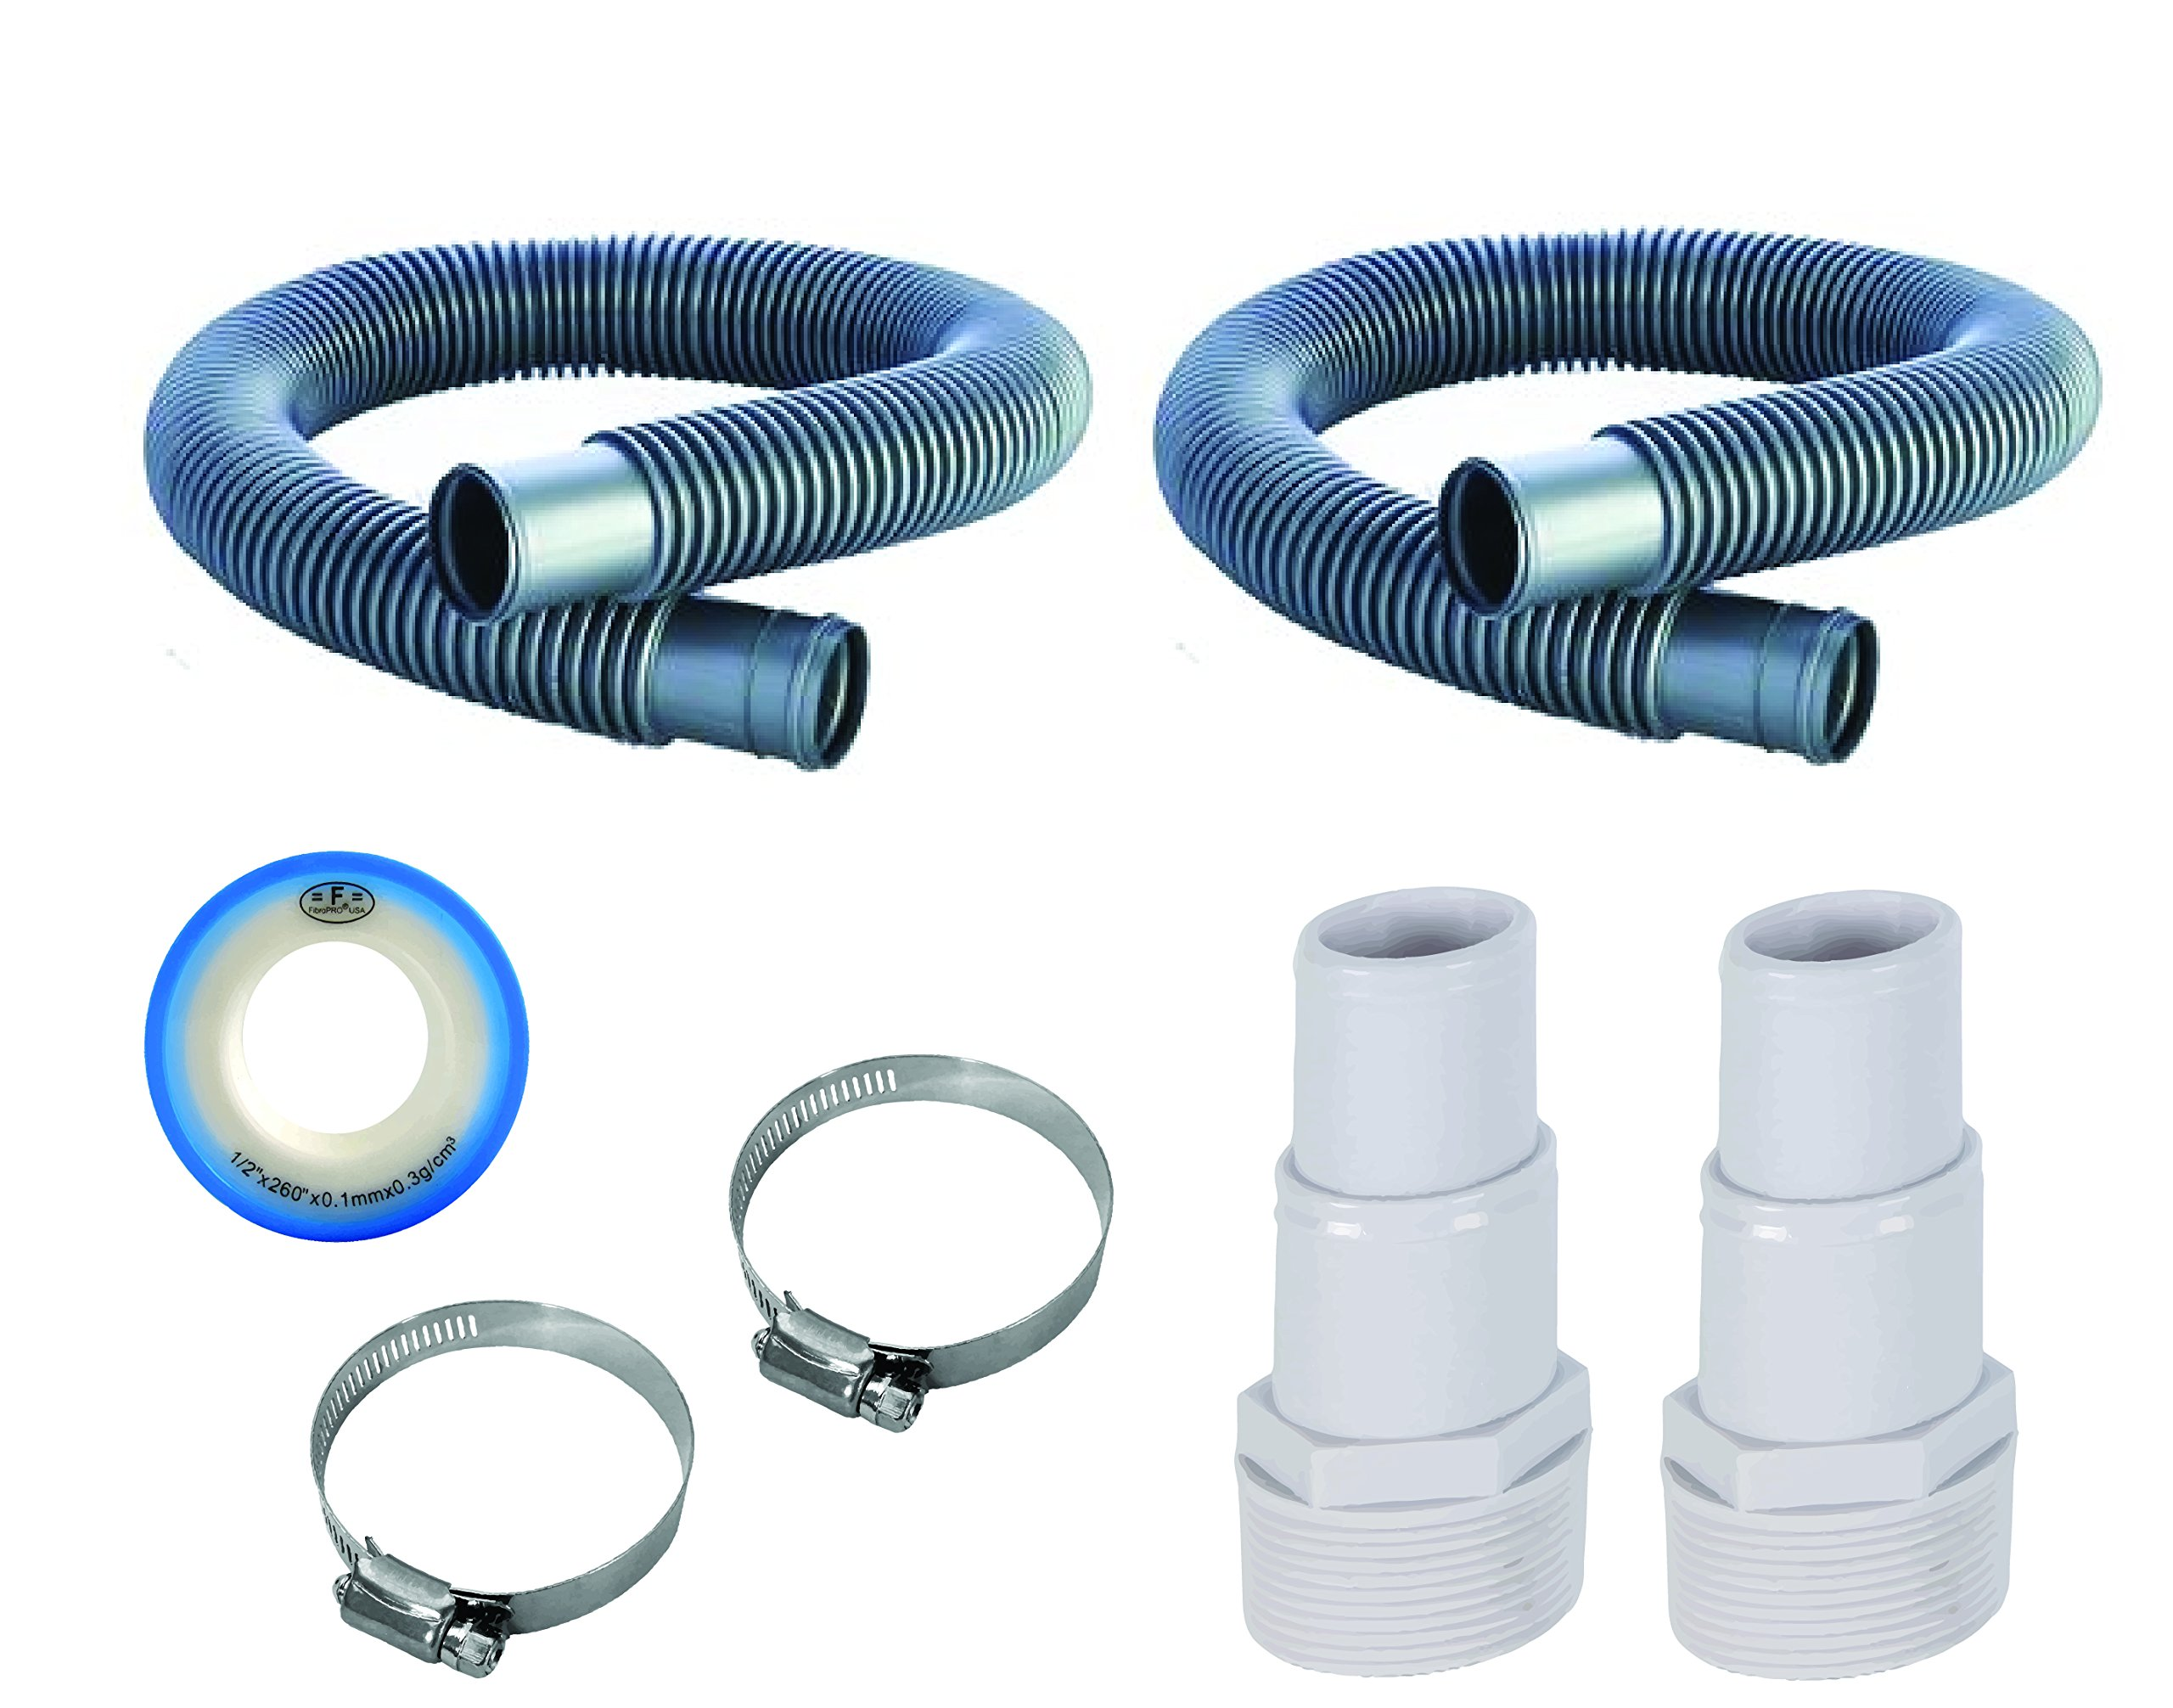 Fibropool 1 1/2'' Swimming Pool Filter Hose Replacement Kit (6 Feet, 2 Pack) by Fibropool